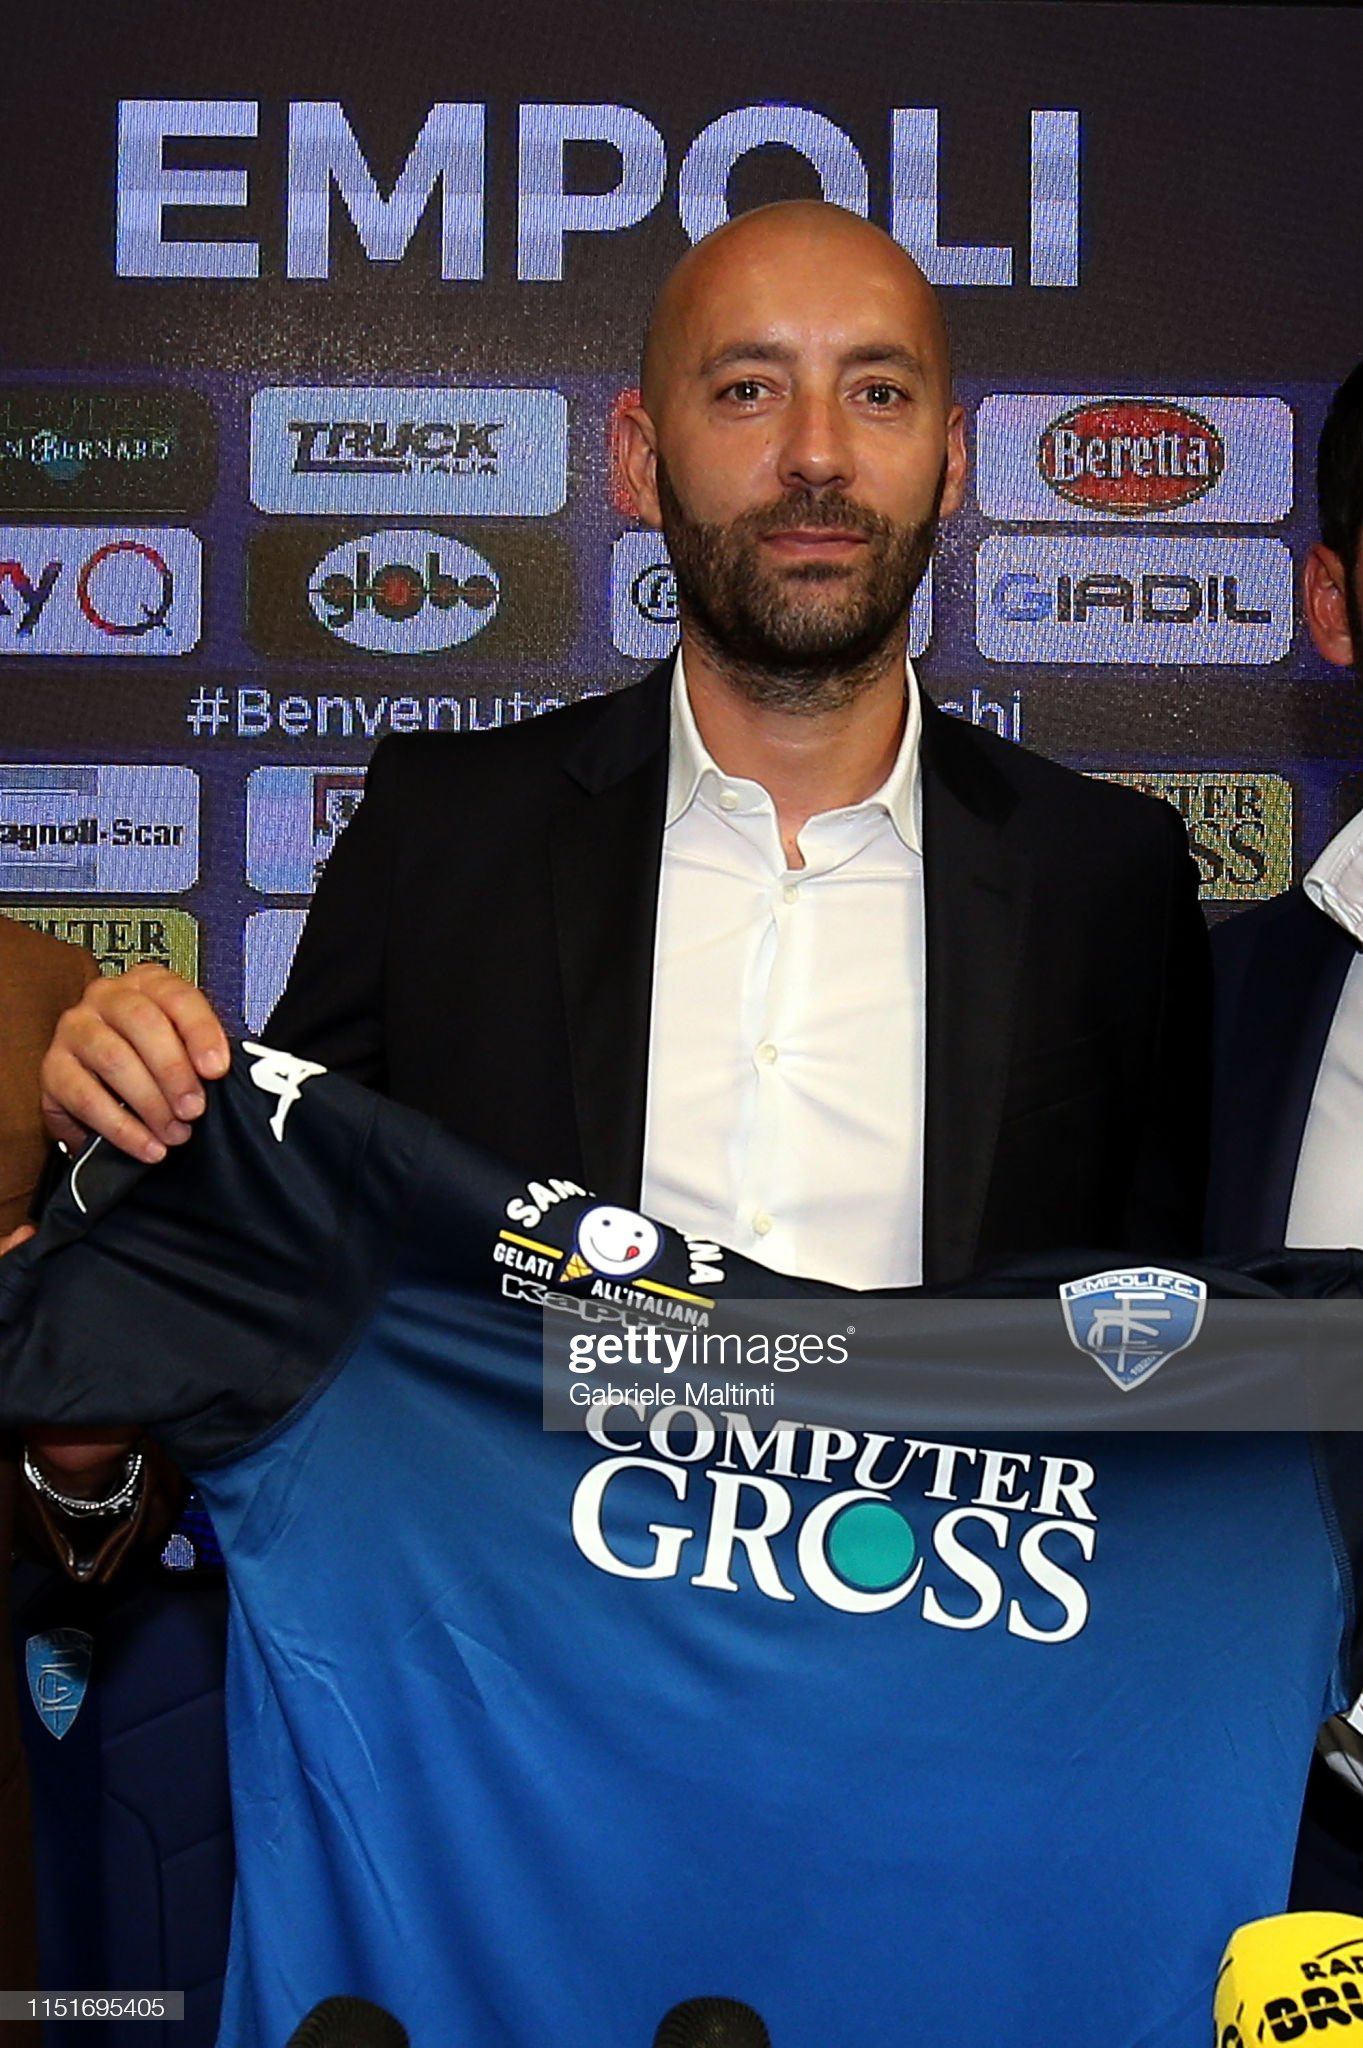 https://media.gettyimages.com/photos/empoli-fc-new-head-coach-cristian-bucchi-during-press-conference-on-picture-id1151695405?s=2048x2048